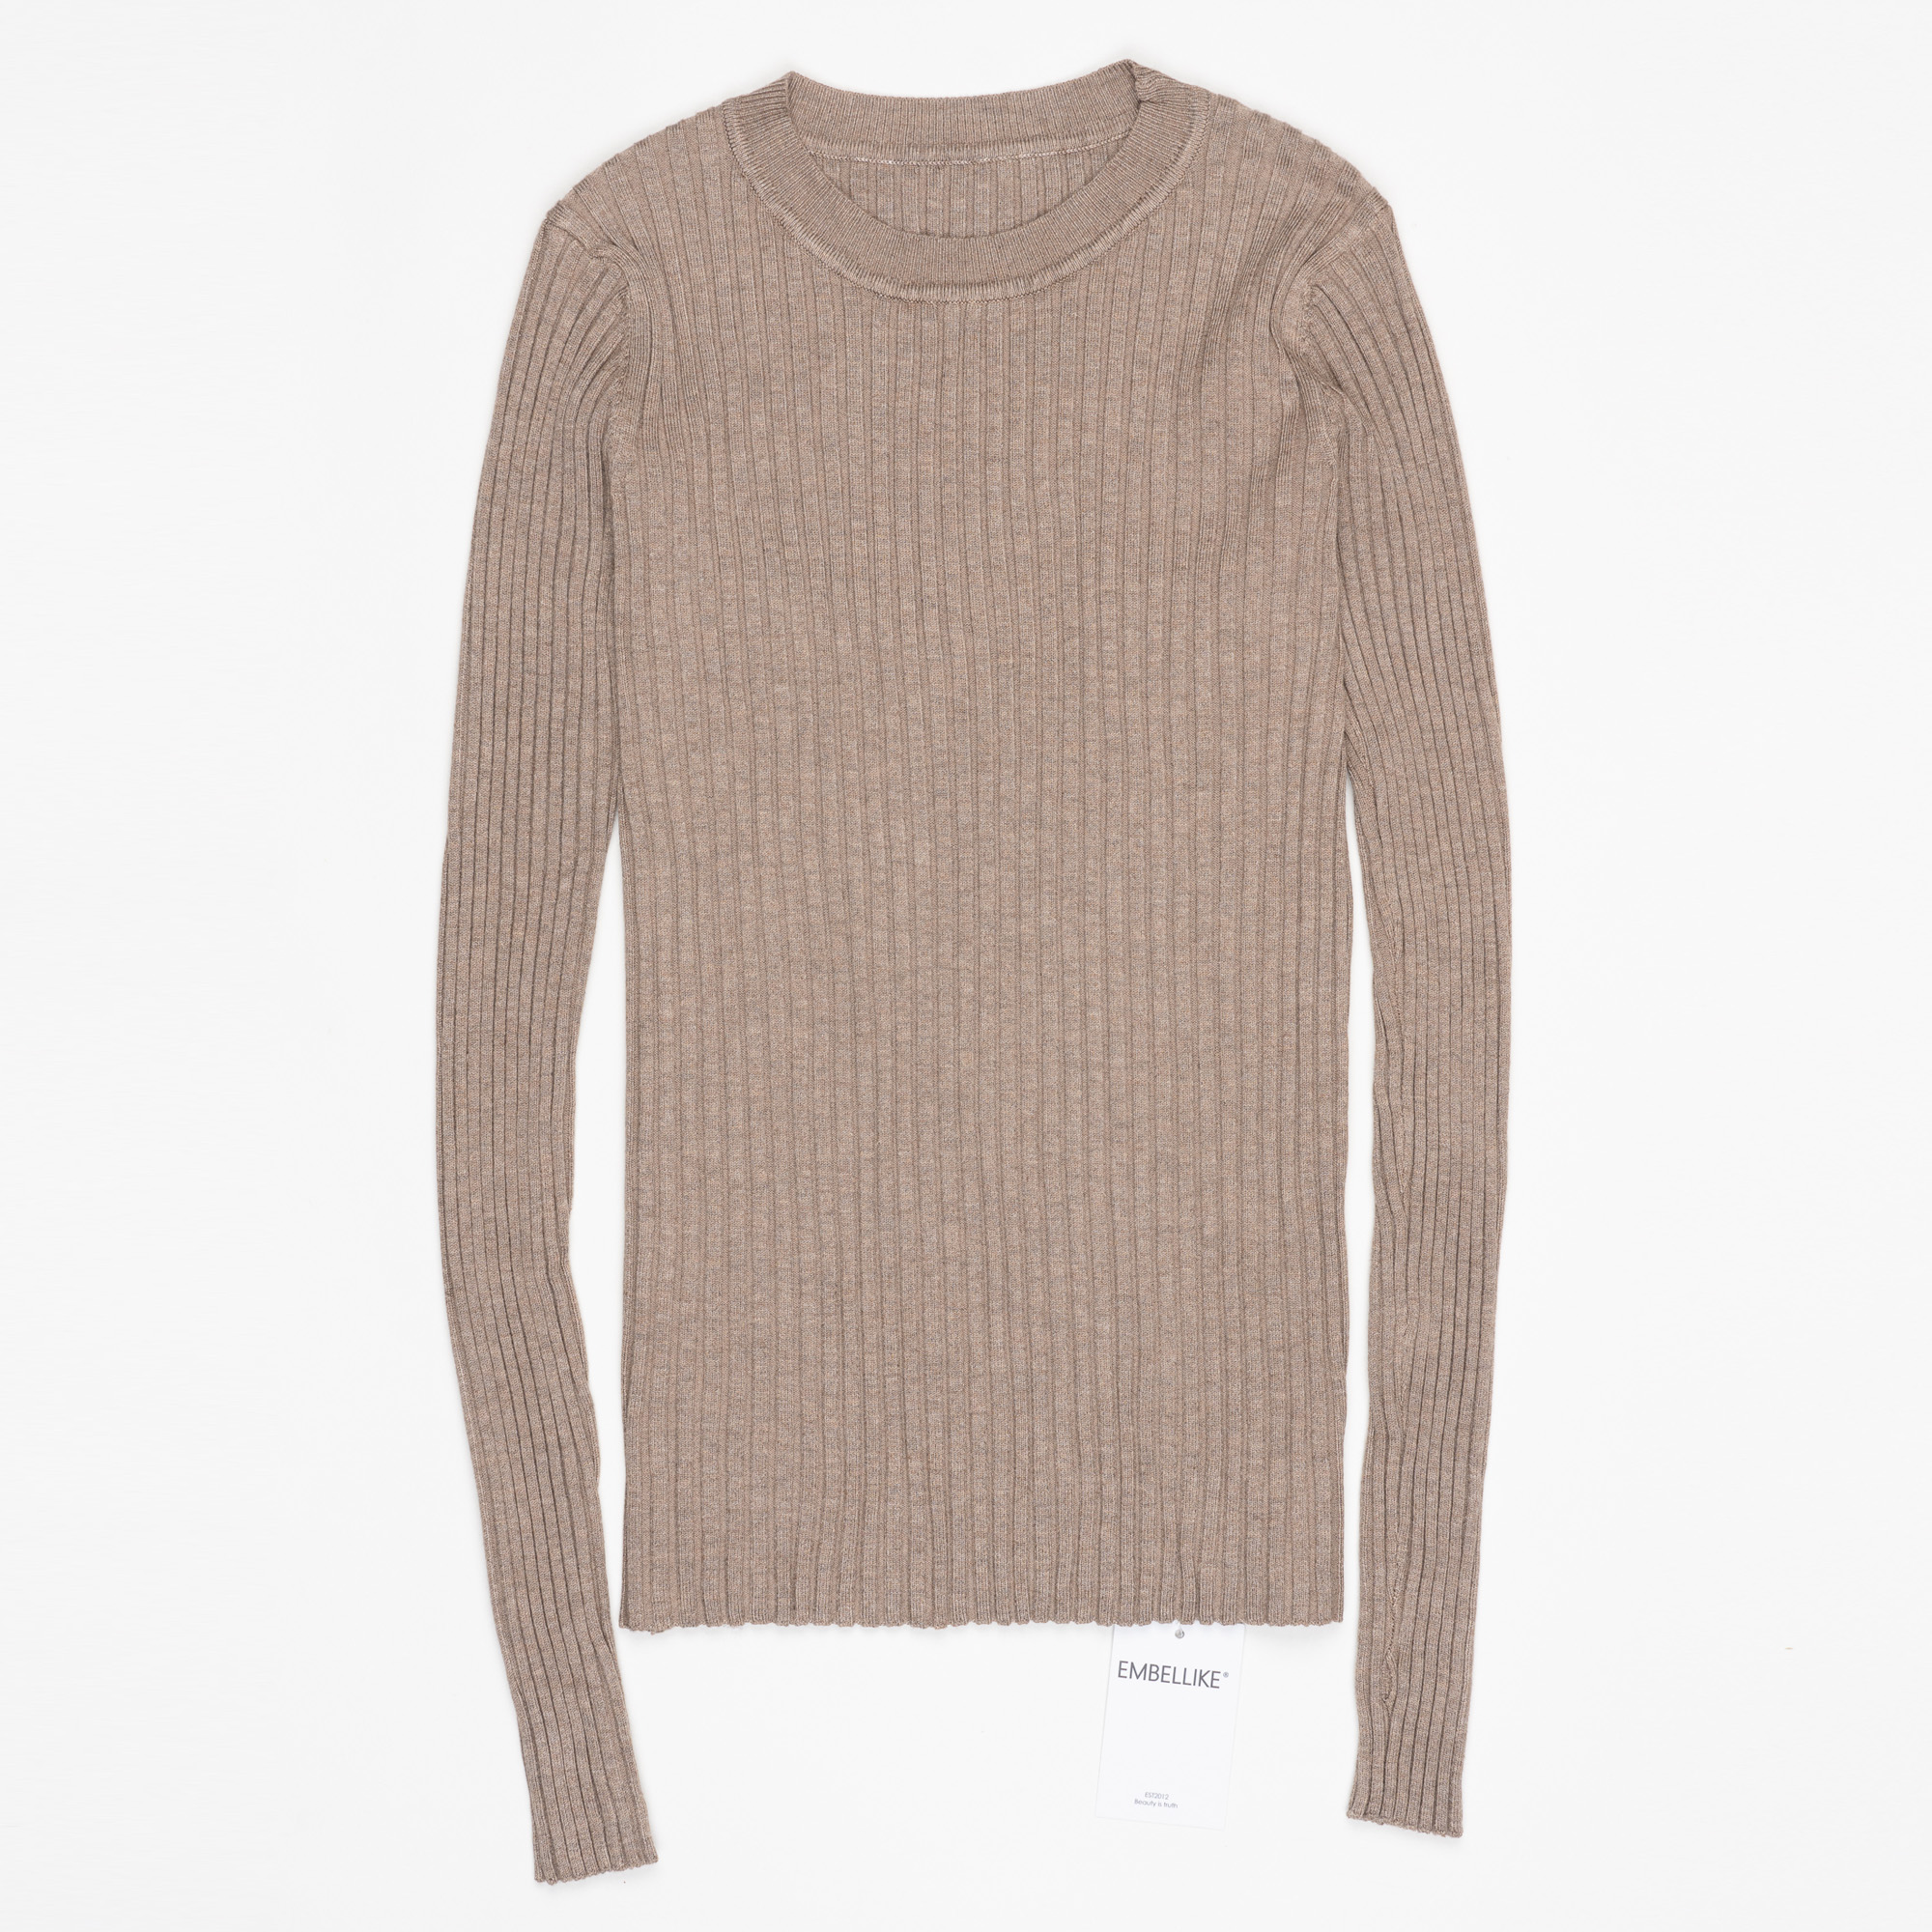 Women Sweater Pullover Basic Ribbed Sweaters Cotton Tops Knitted Solid Crew Neck With Thumb Hole 11